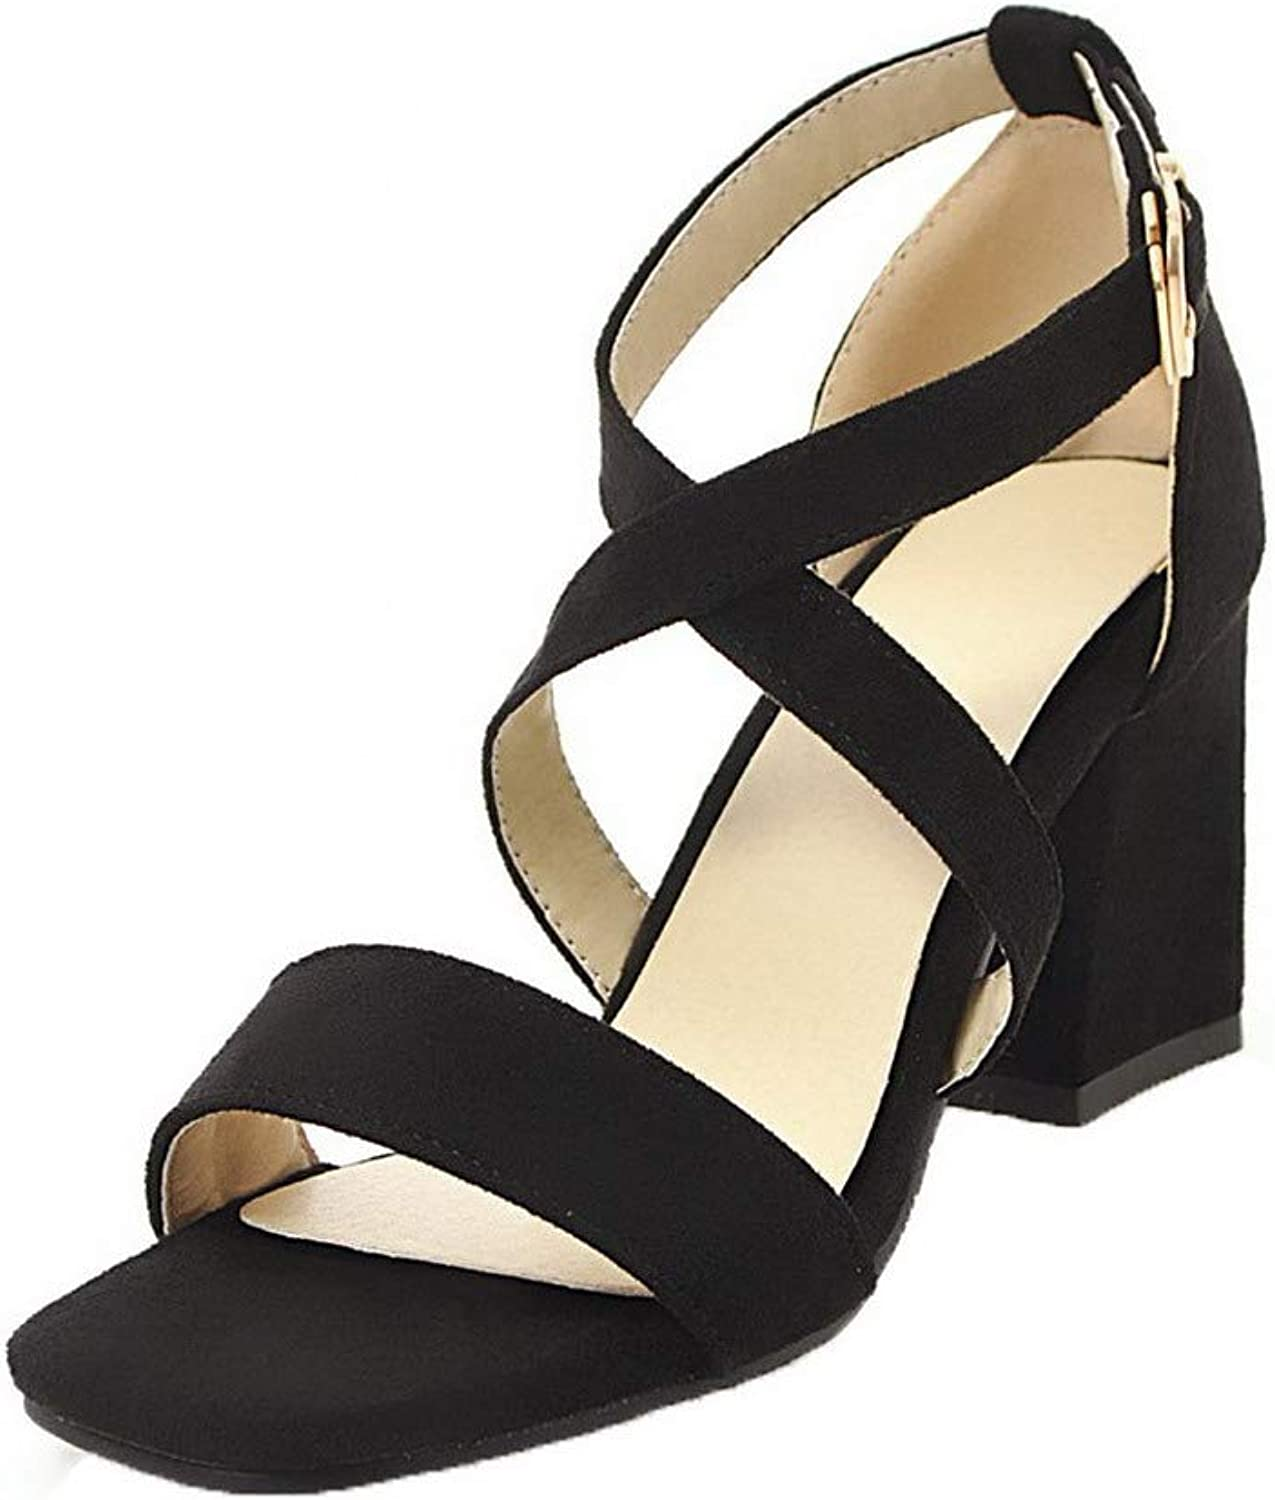 WeiPoot Women's Open Toe High Heels Frosted Buckle Solid Sandals